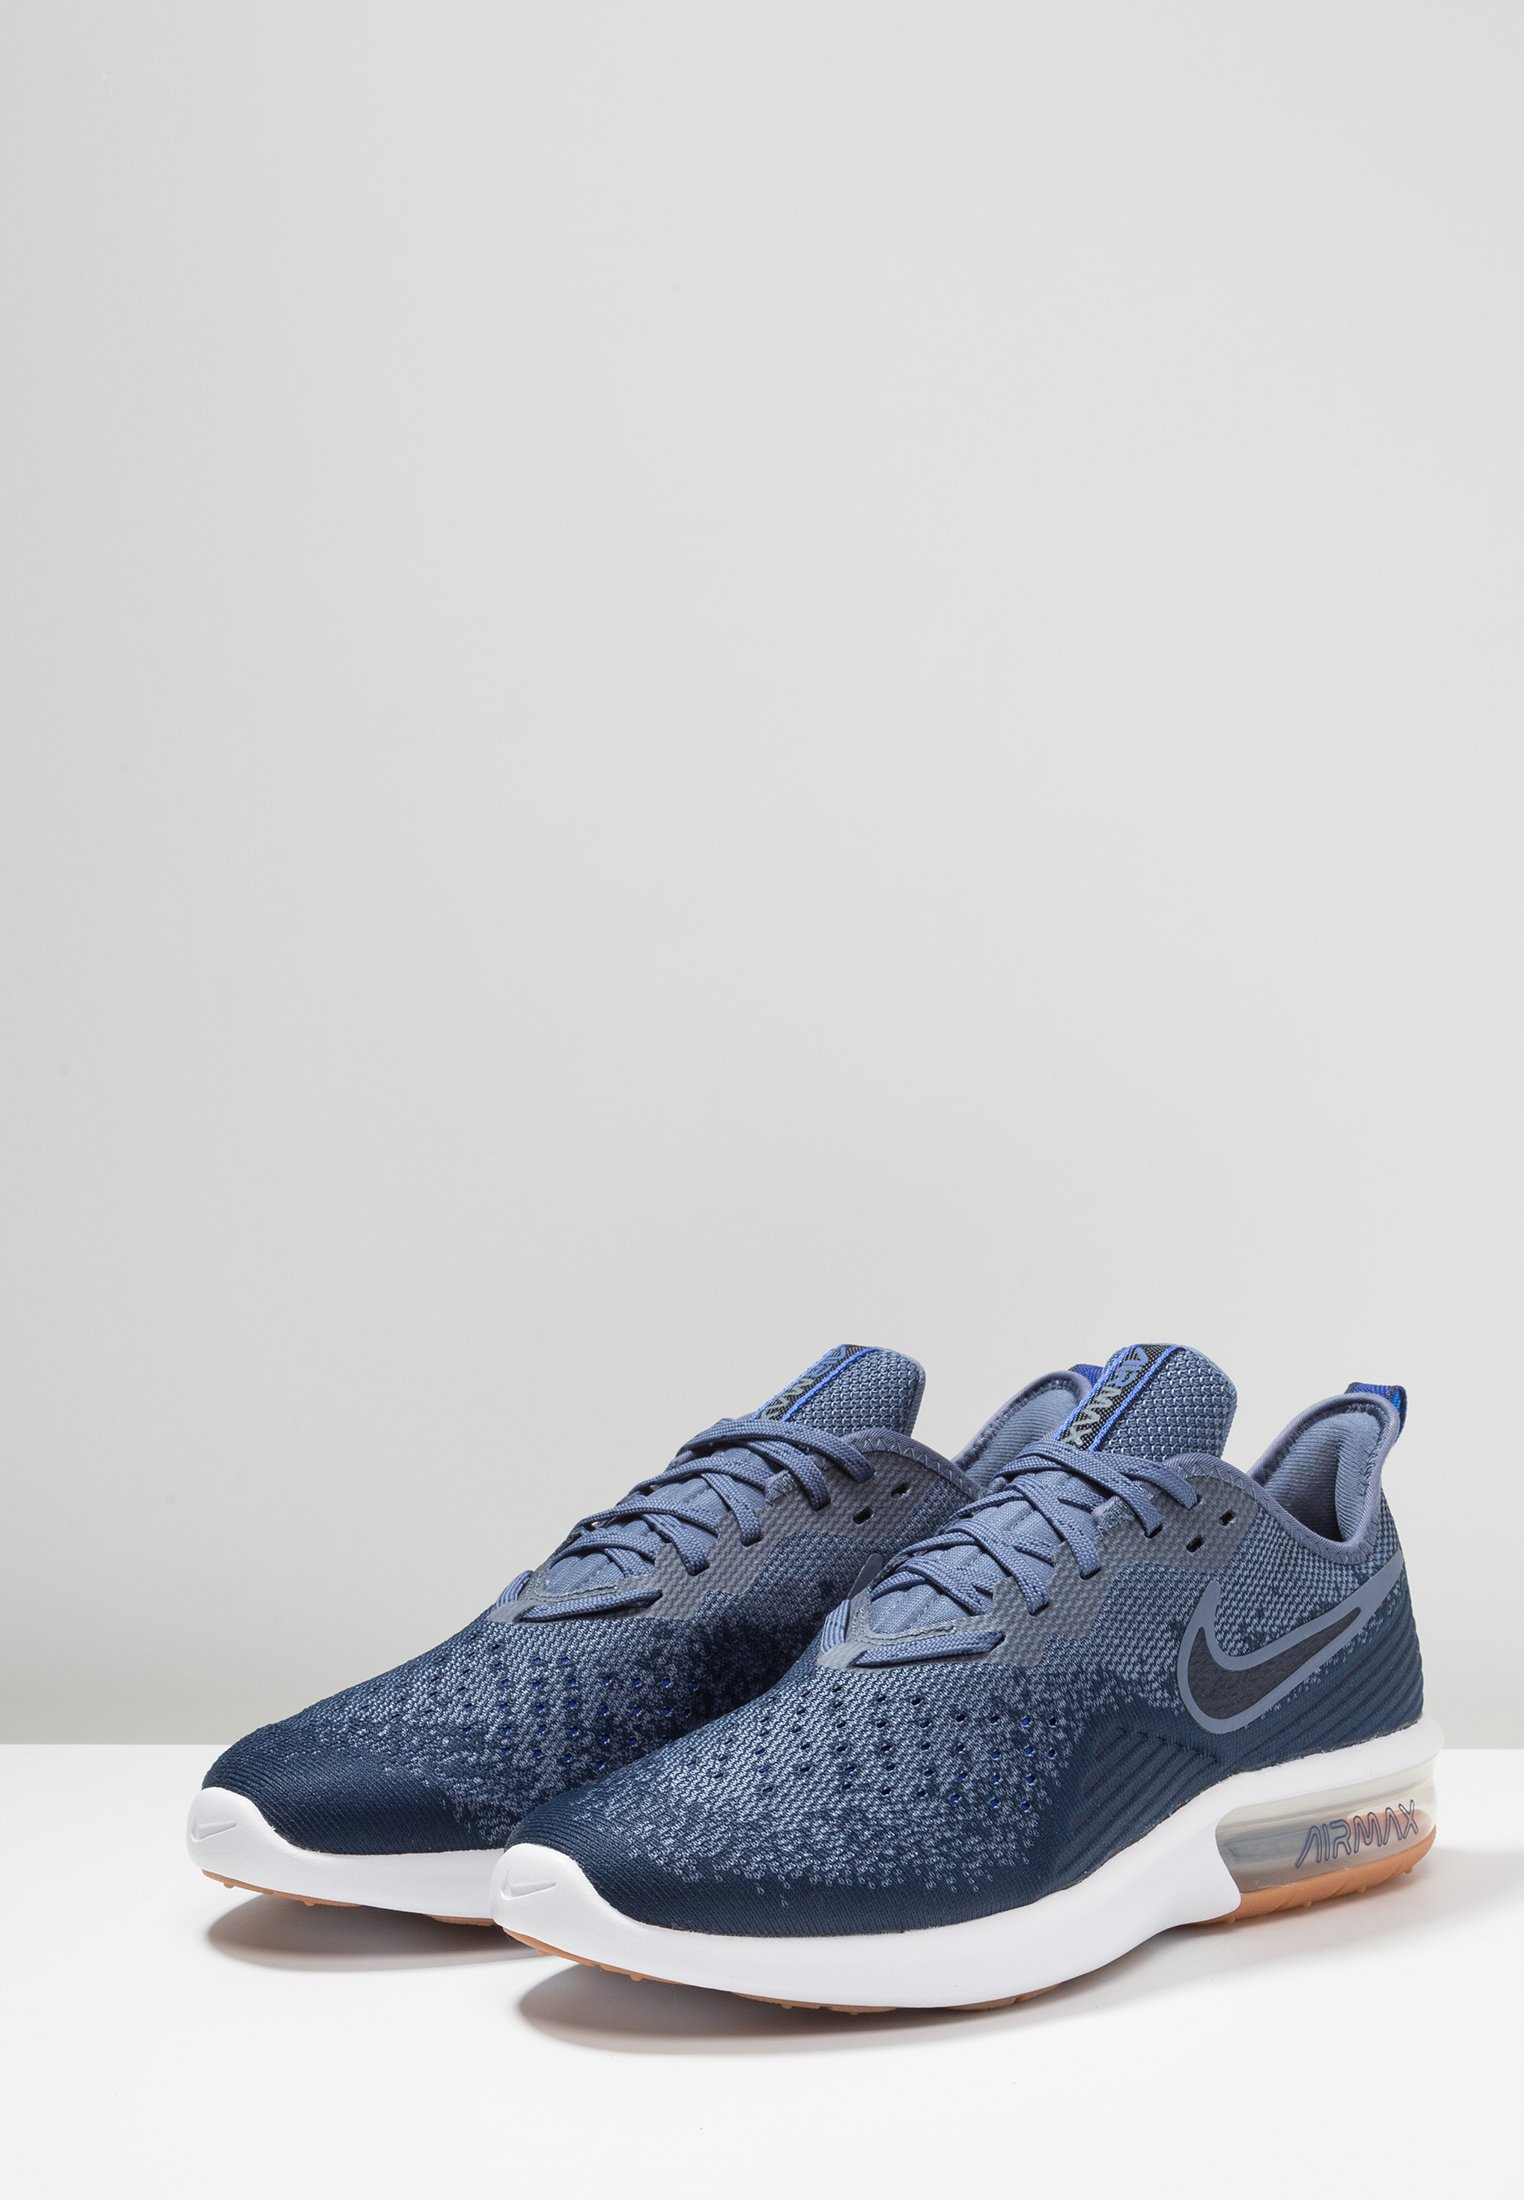 Air De Neutres Midnight hyper Royal 4Chaussures Navy diffused Blue Nike white Performance Sequent obsidian Running Max oBCrxEQdeW